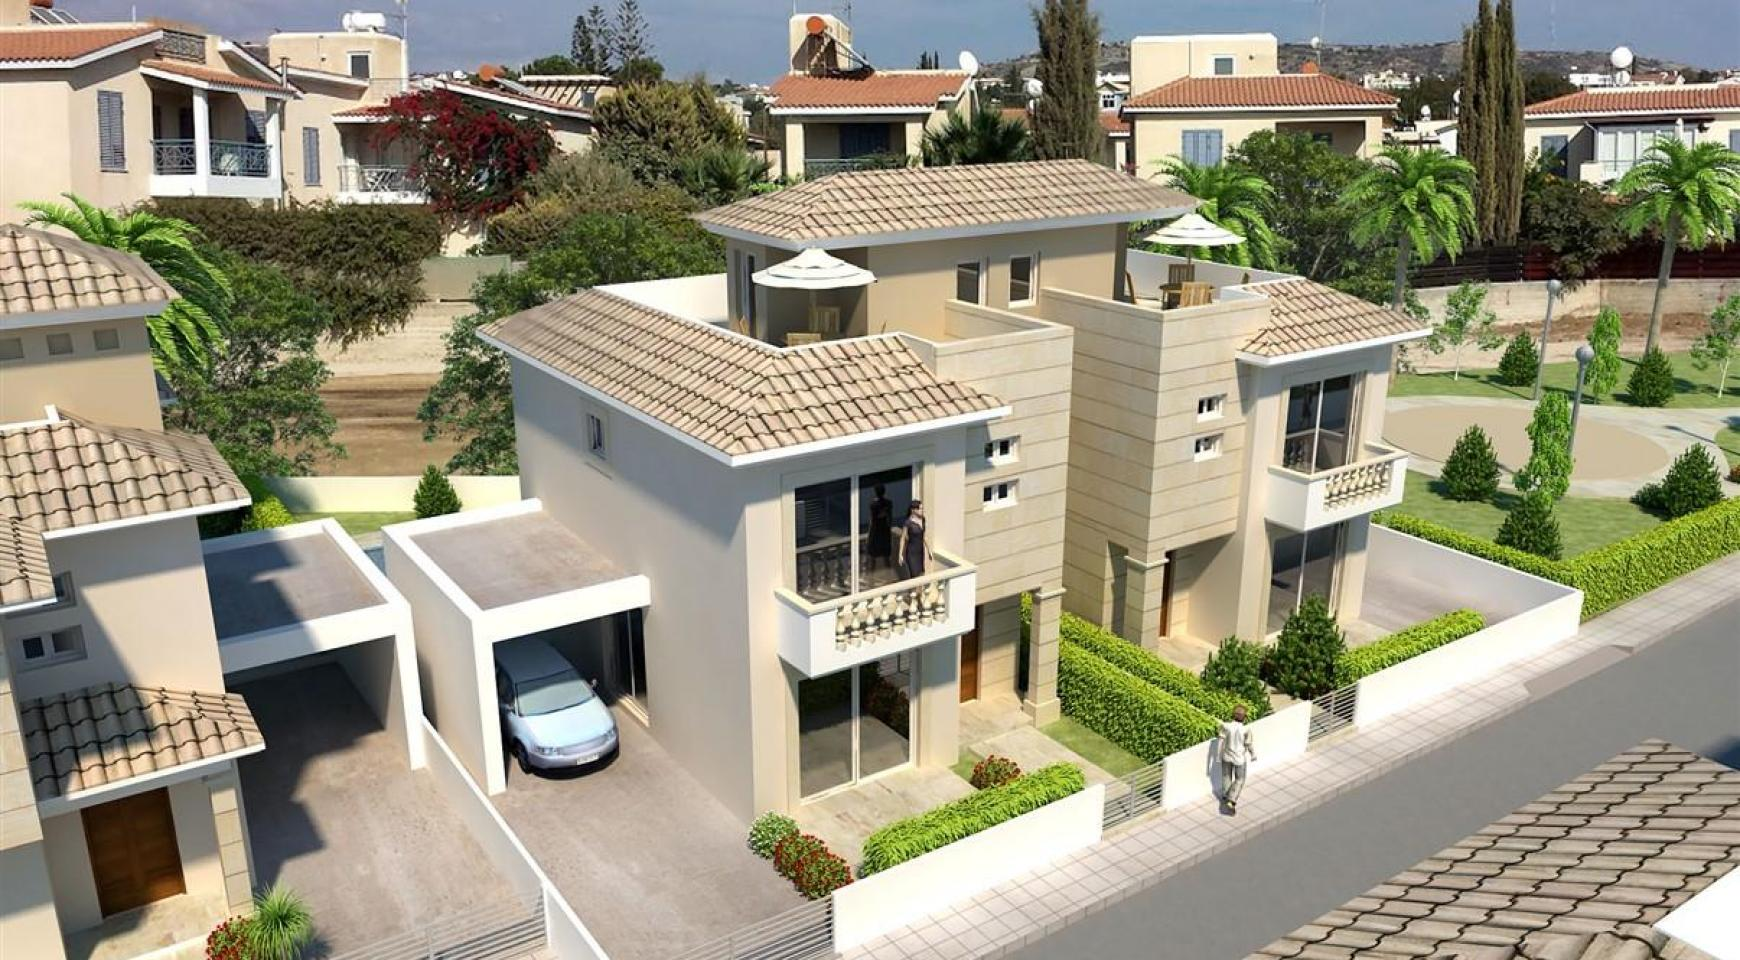 3 Bedroom Villa in a New Project - 25